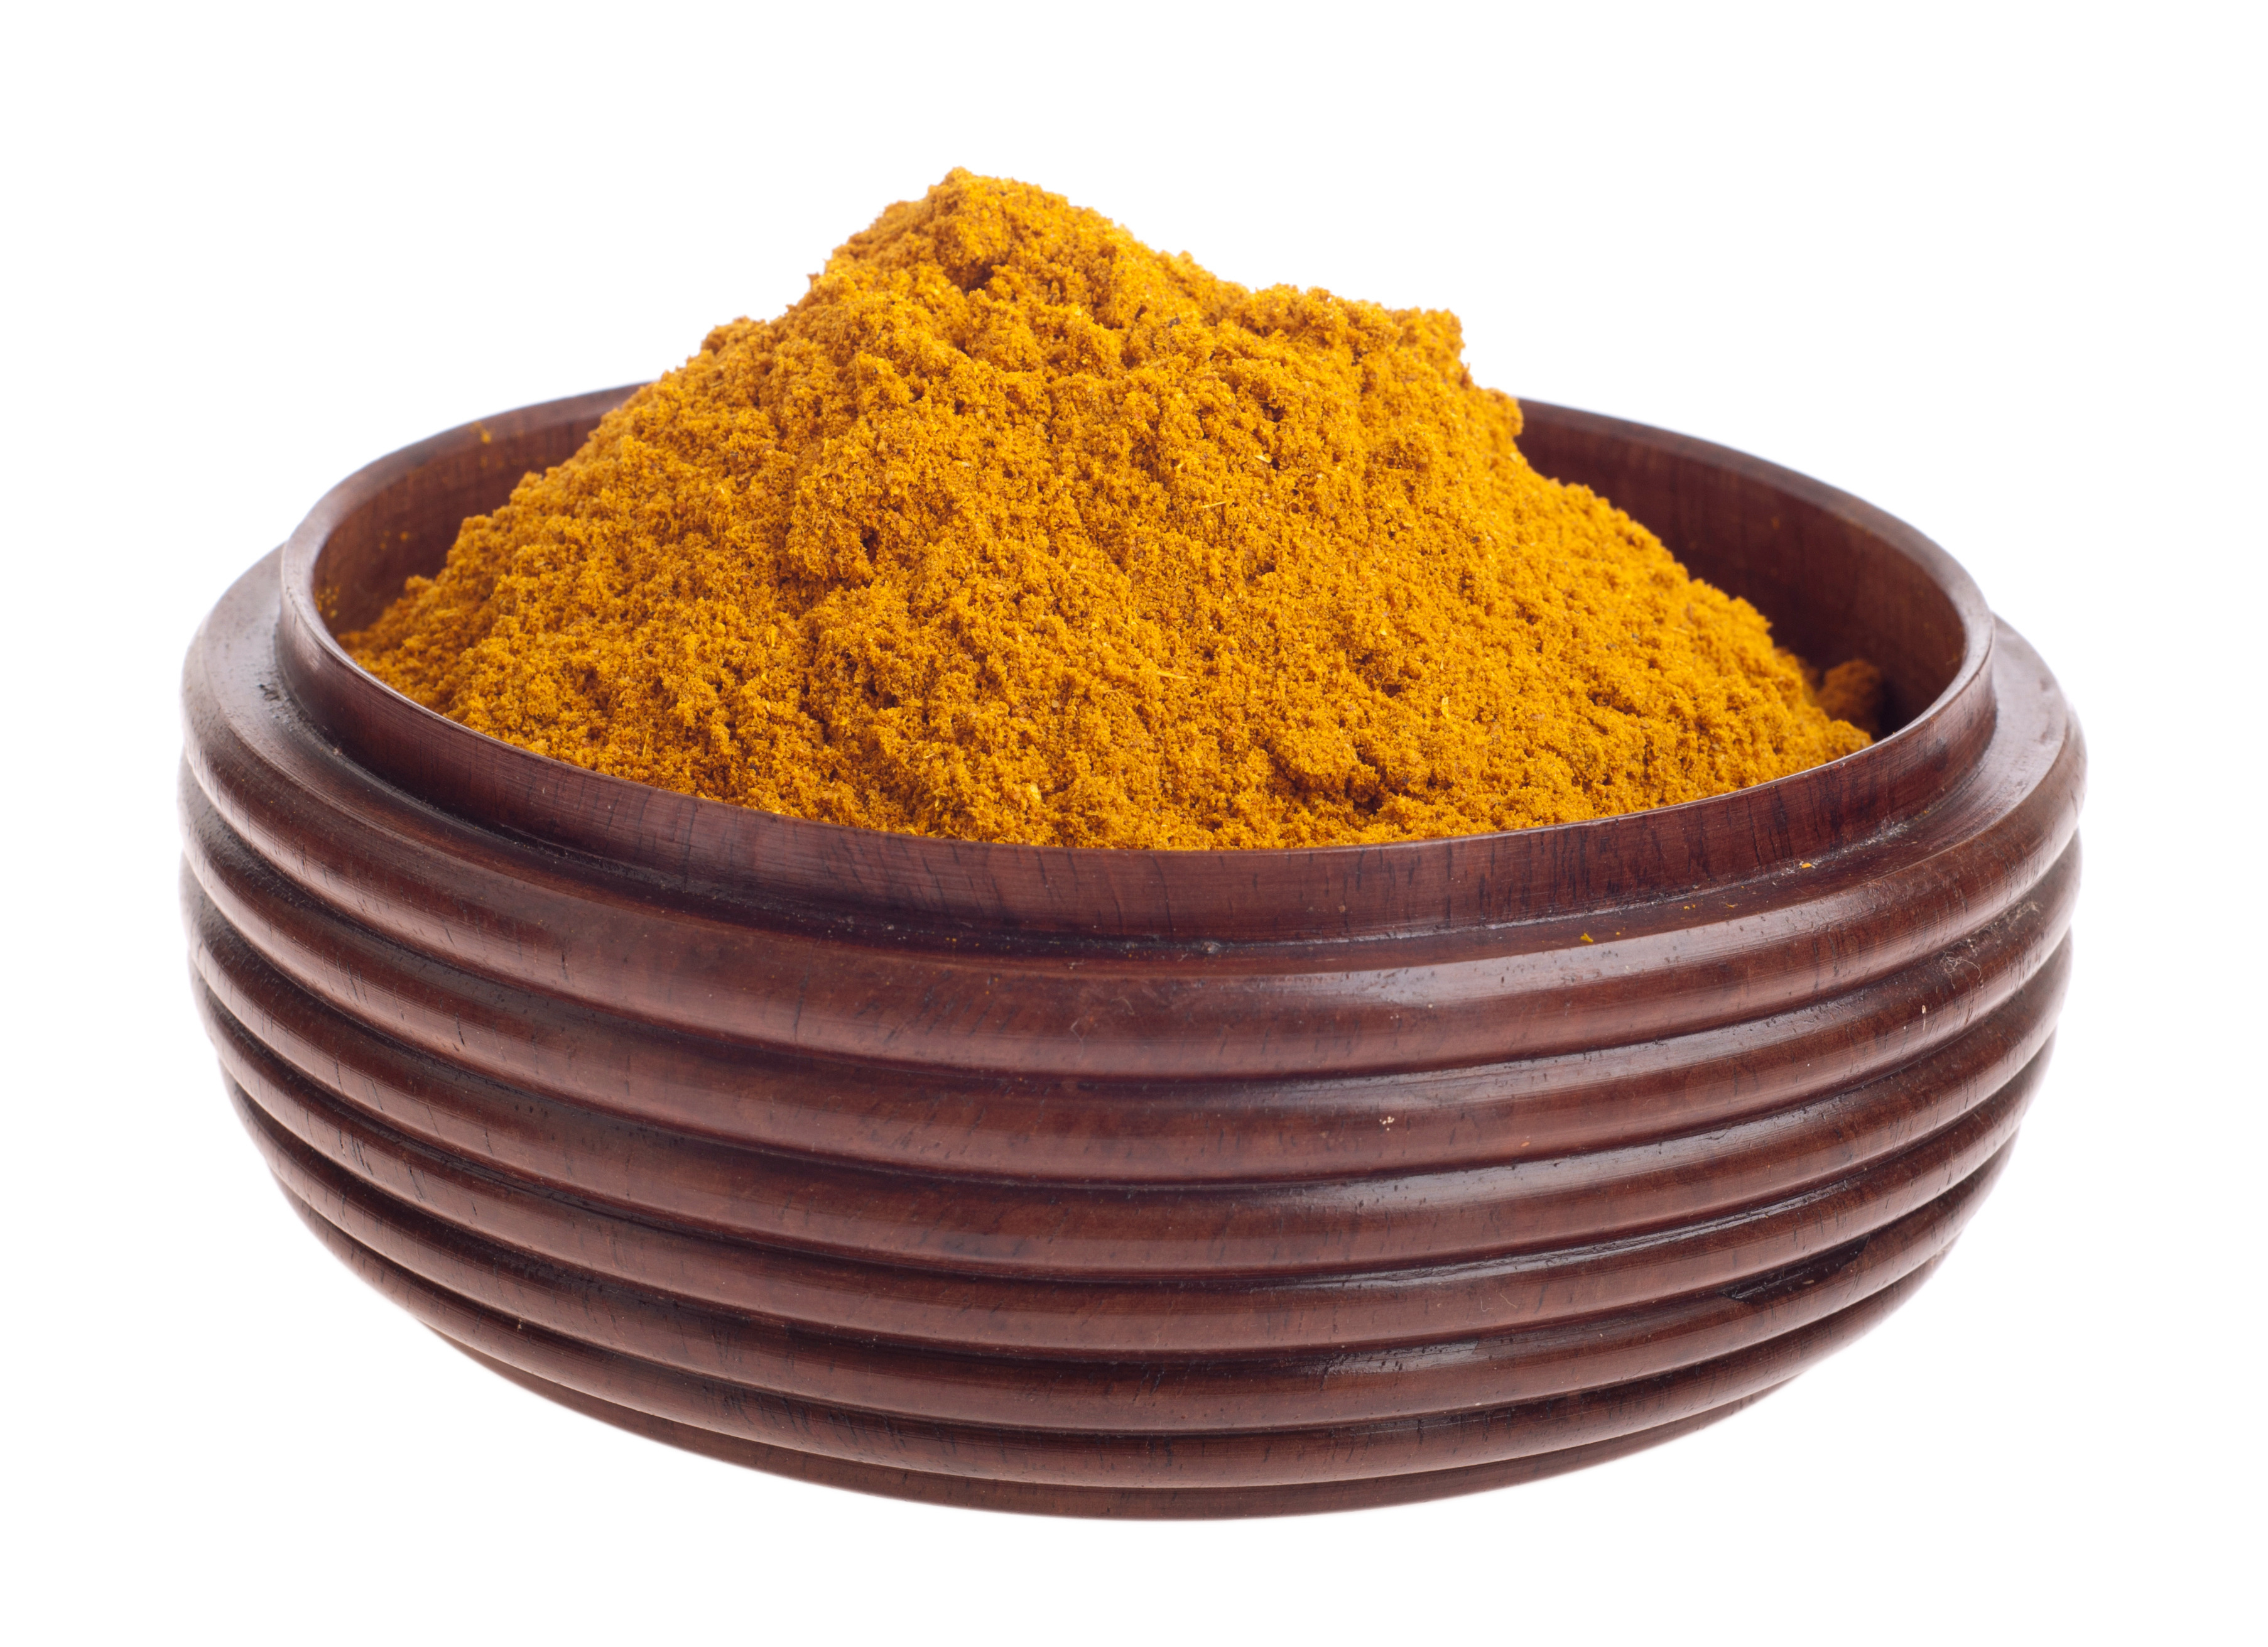 how to best use turmeric powder